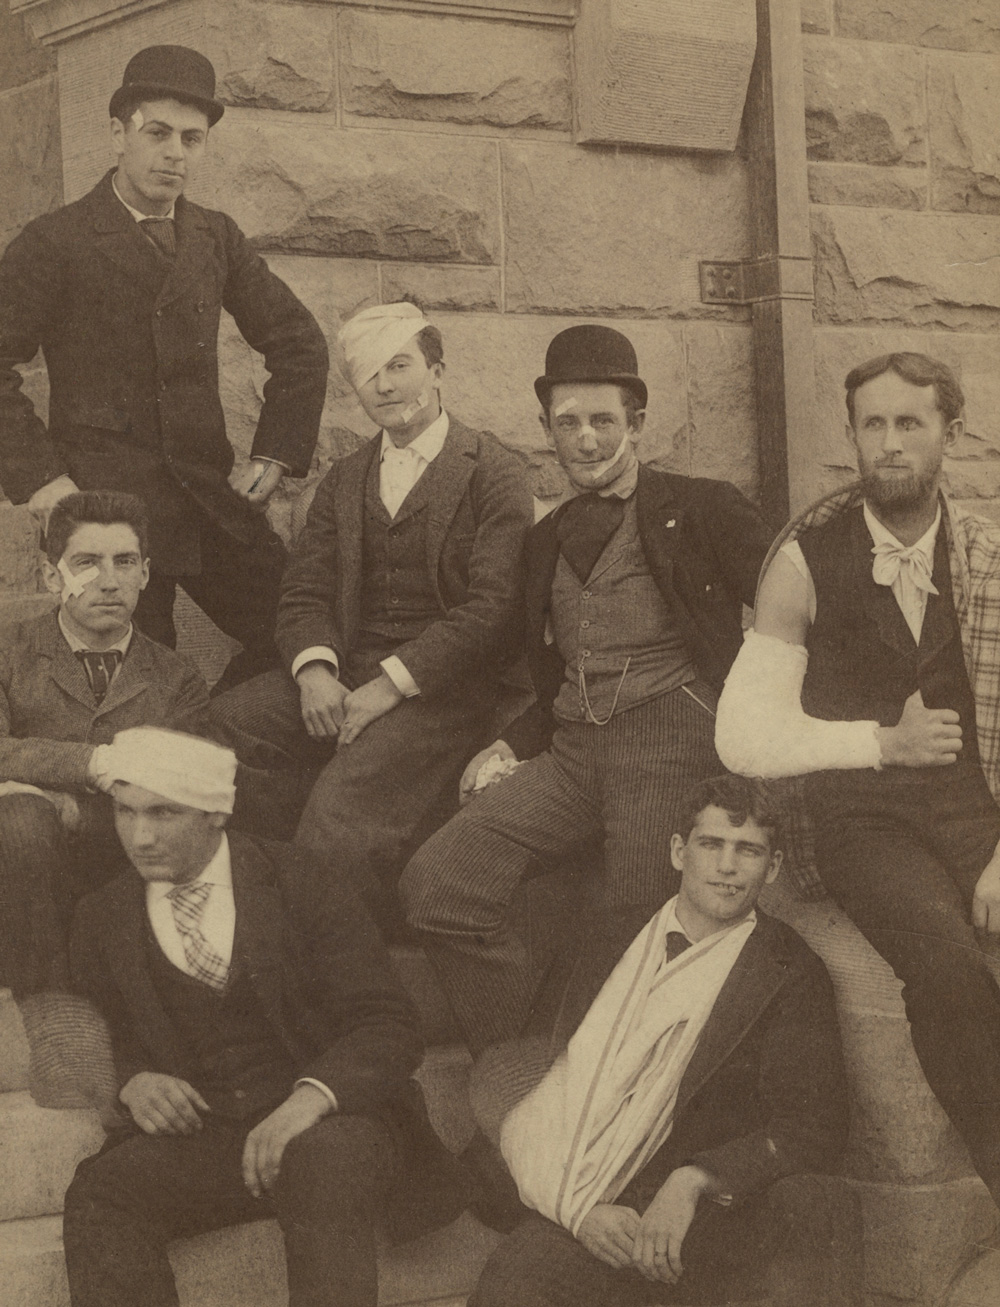 A group of wounded men sitting on the stairs of what appears to be main quad after a brawl.